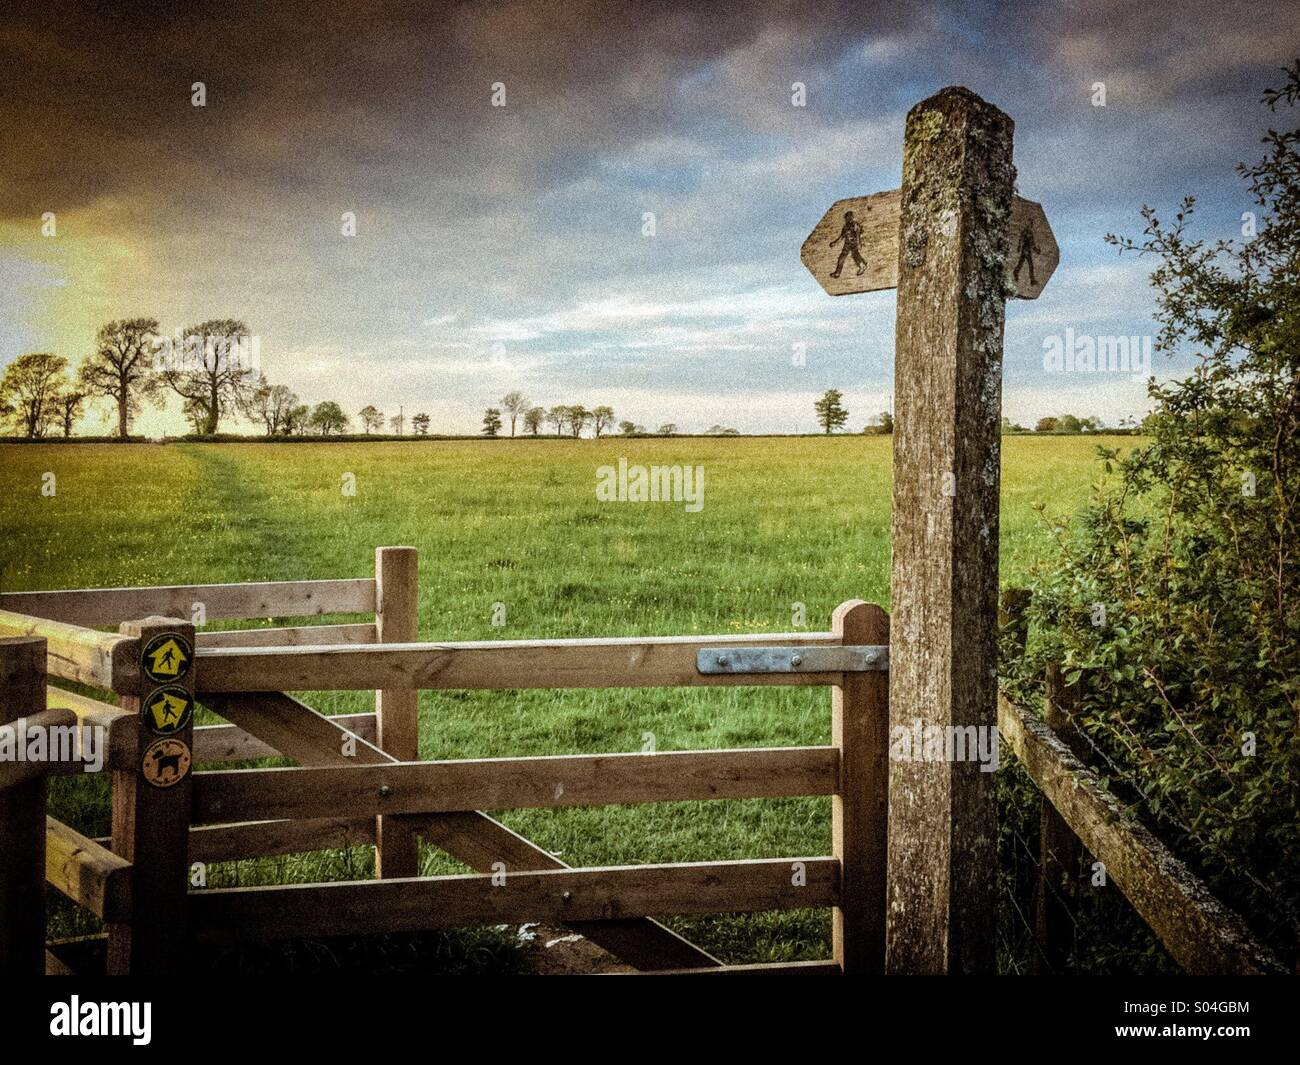 A walk in the countryside - Stock Image